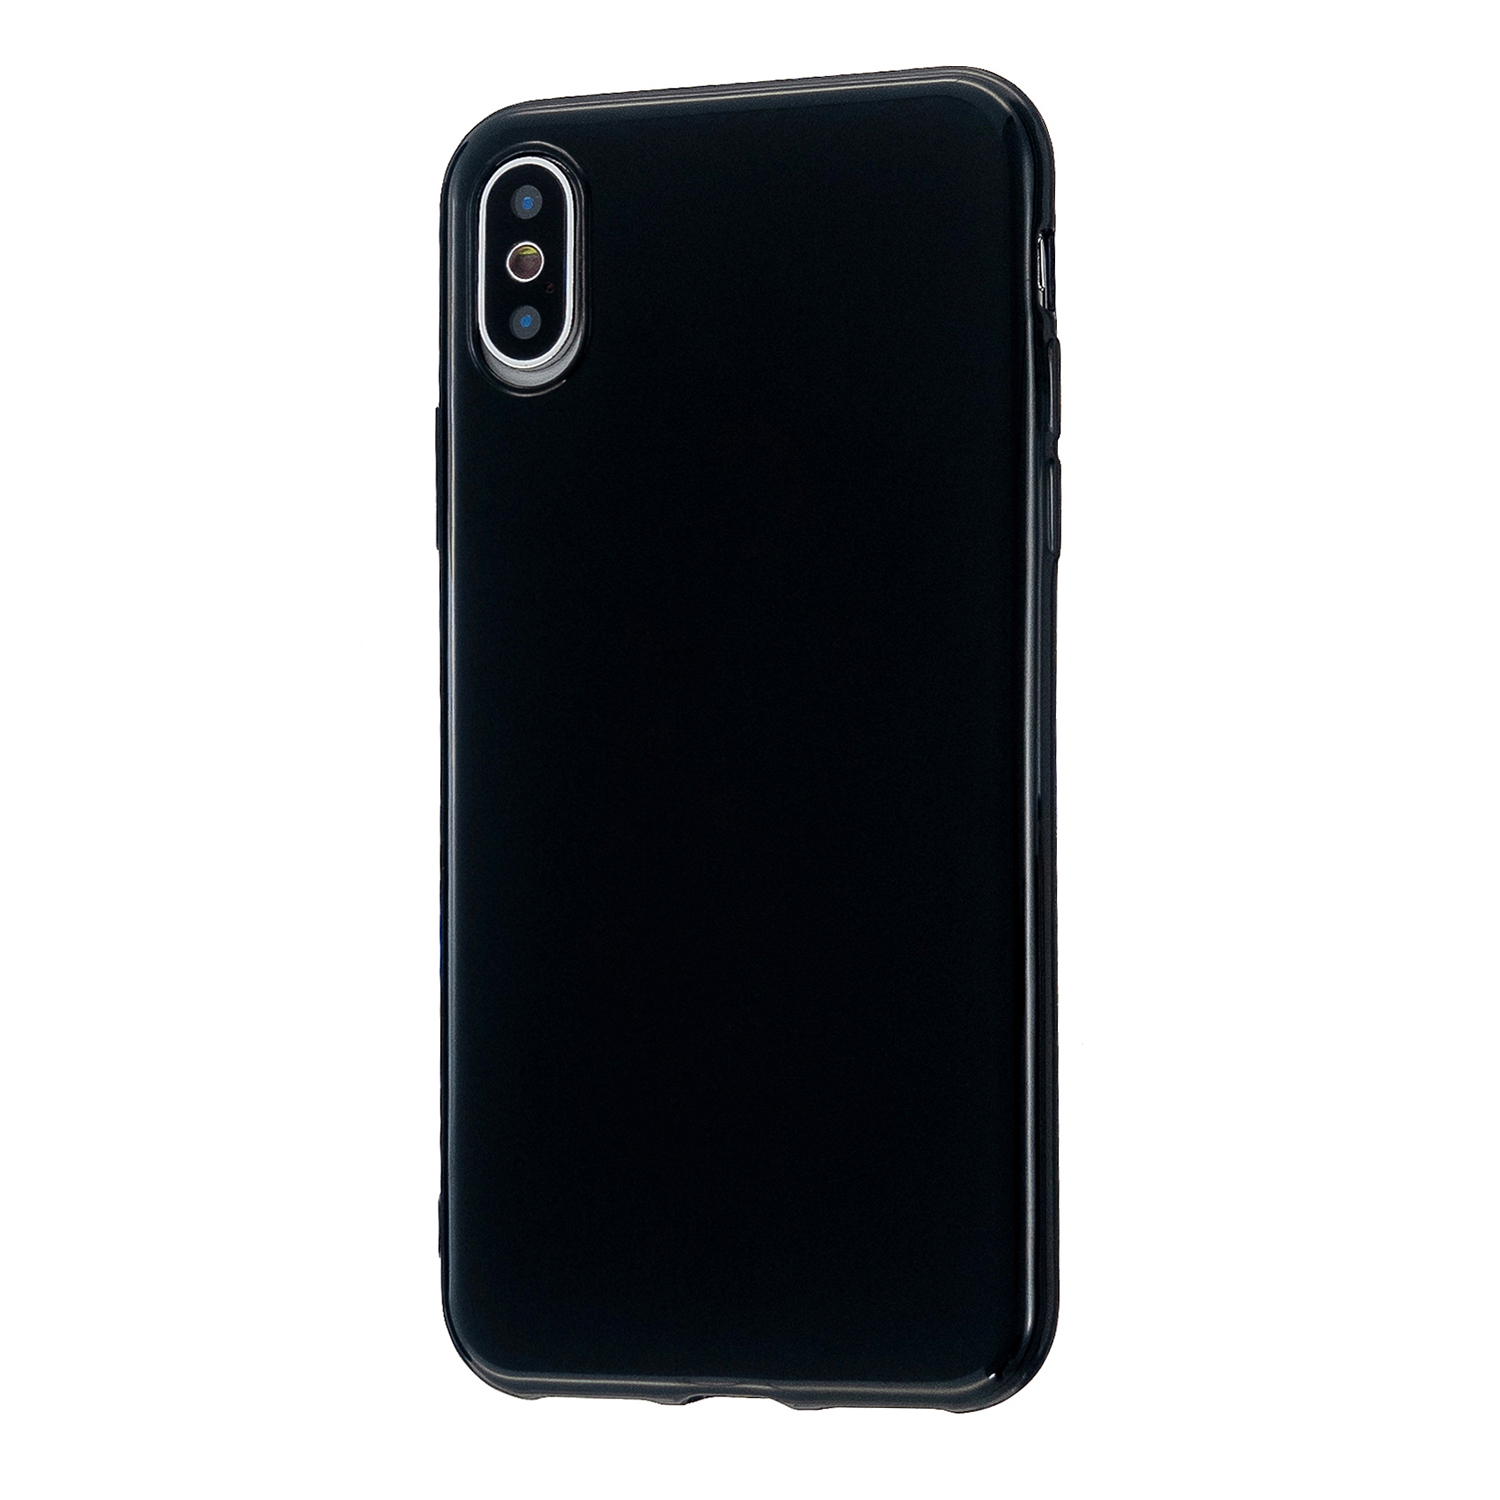 For iPhone X/XS/XS Max/XR  Cellphone Cover Slim Fit Bumper Protective Case Glossy TPU Mobile Phone Shell Bright black